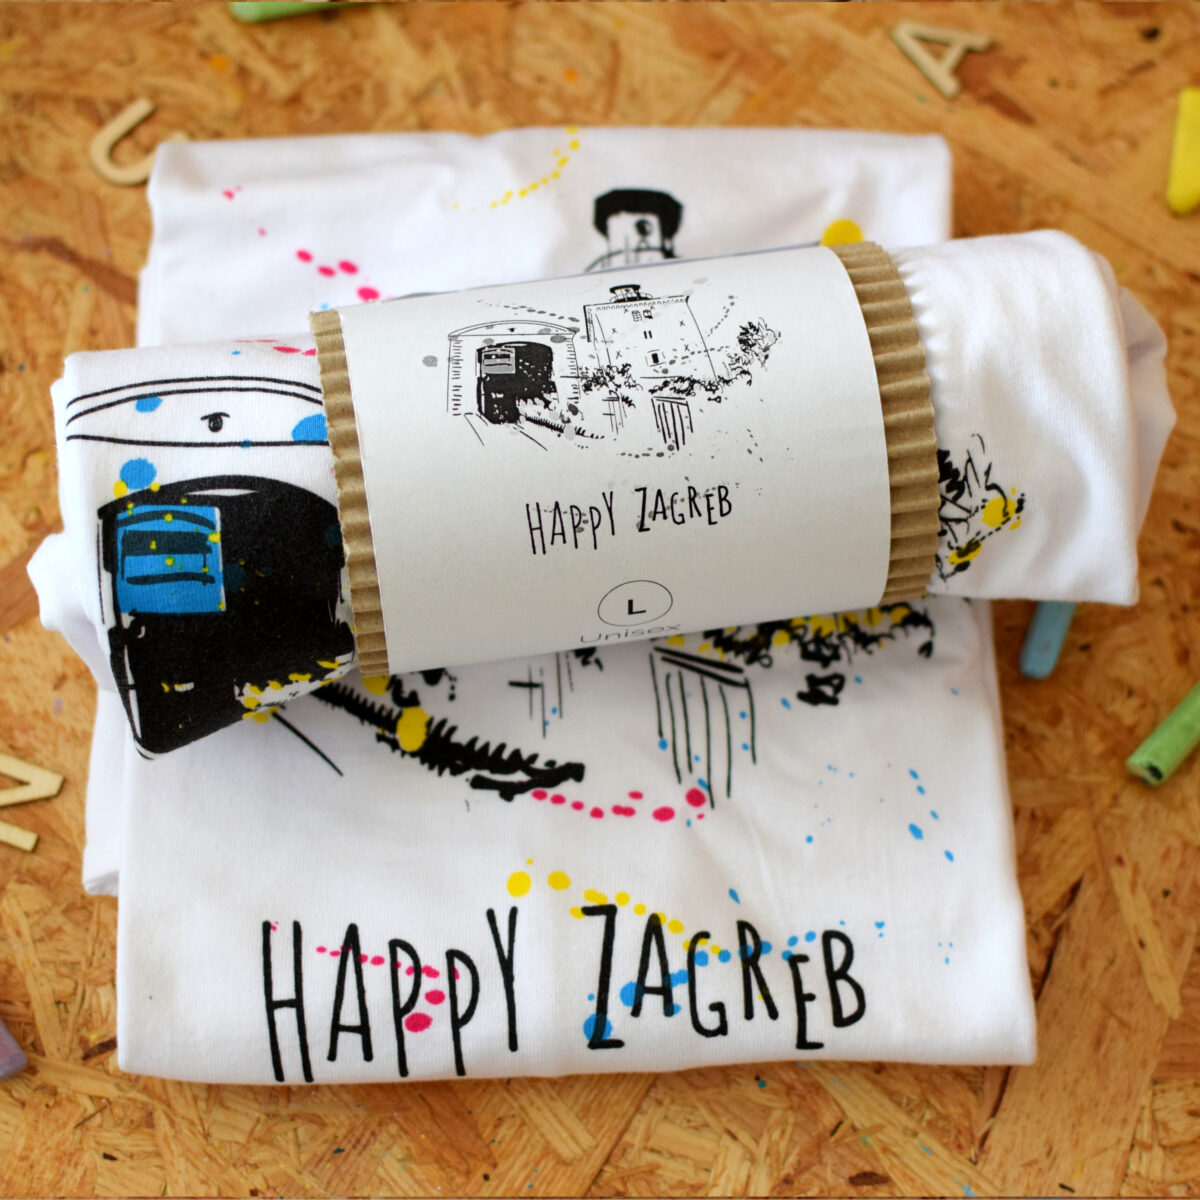 Happy Zagreb T-shirt